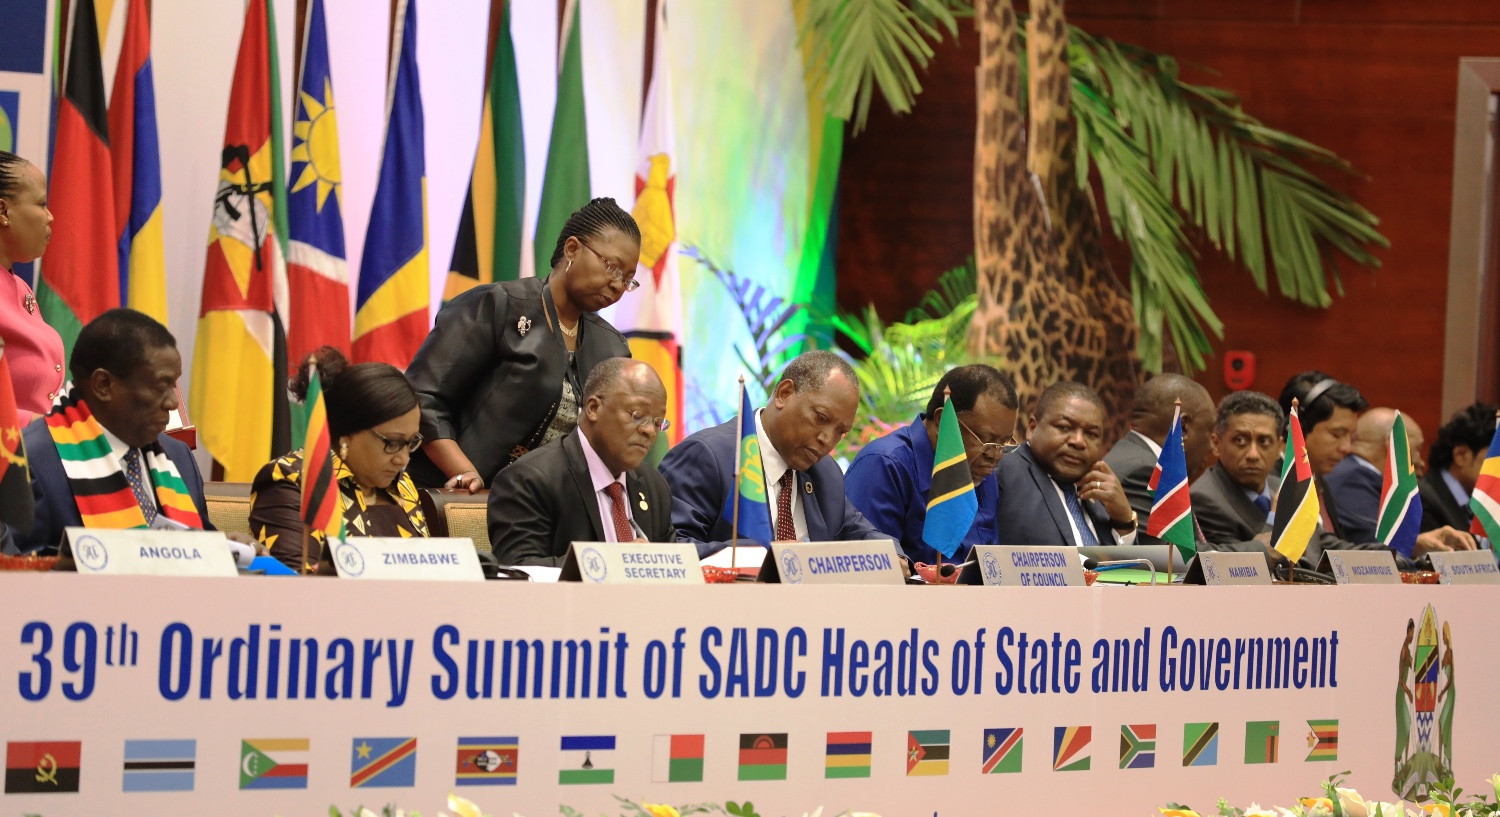 39th Ordinary Summit of SADC Heads of State & Government